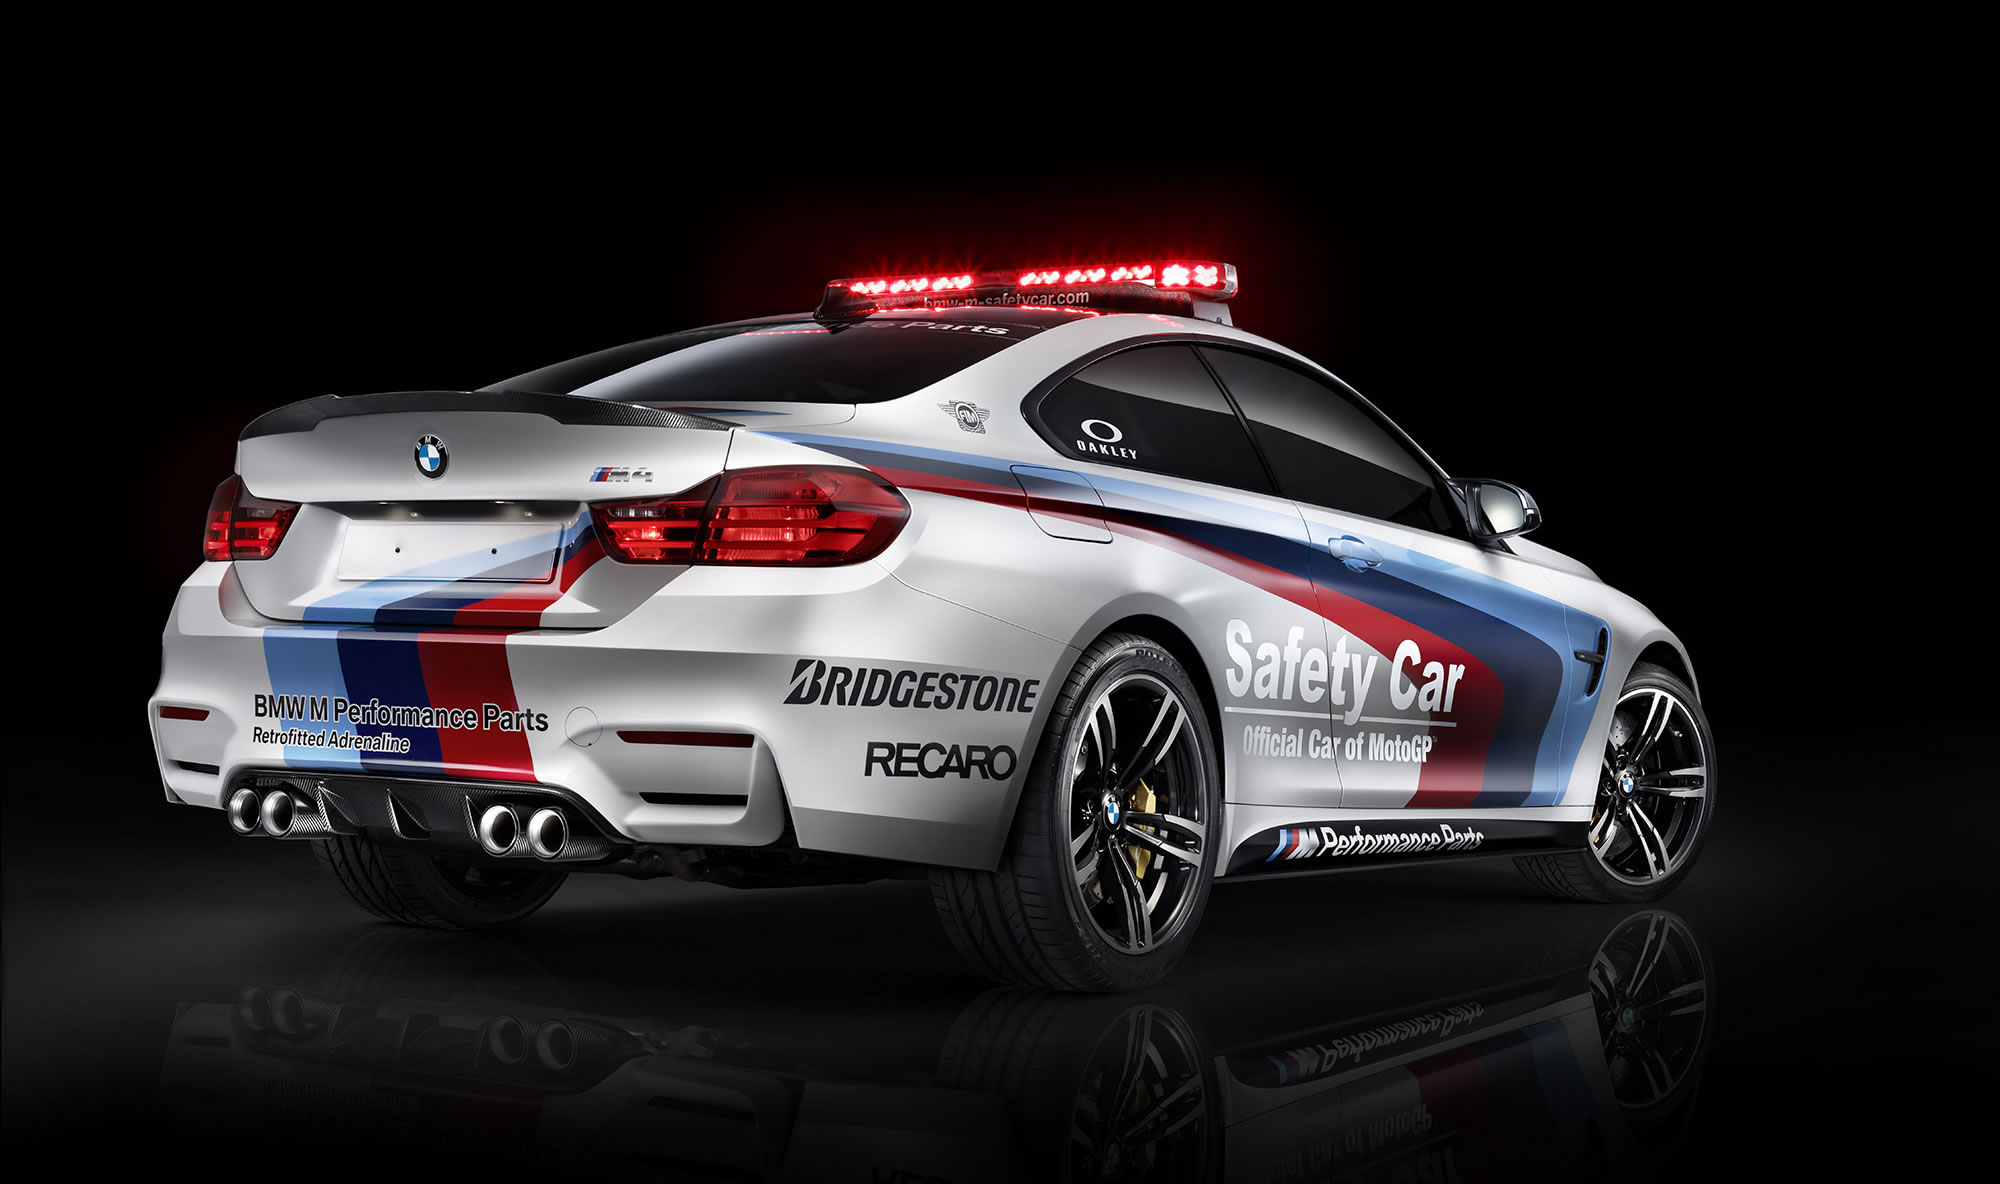 2014 BMW M4 Coupe MotoGP Safety Car Photos, Specs and Review - RS